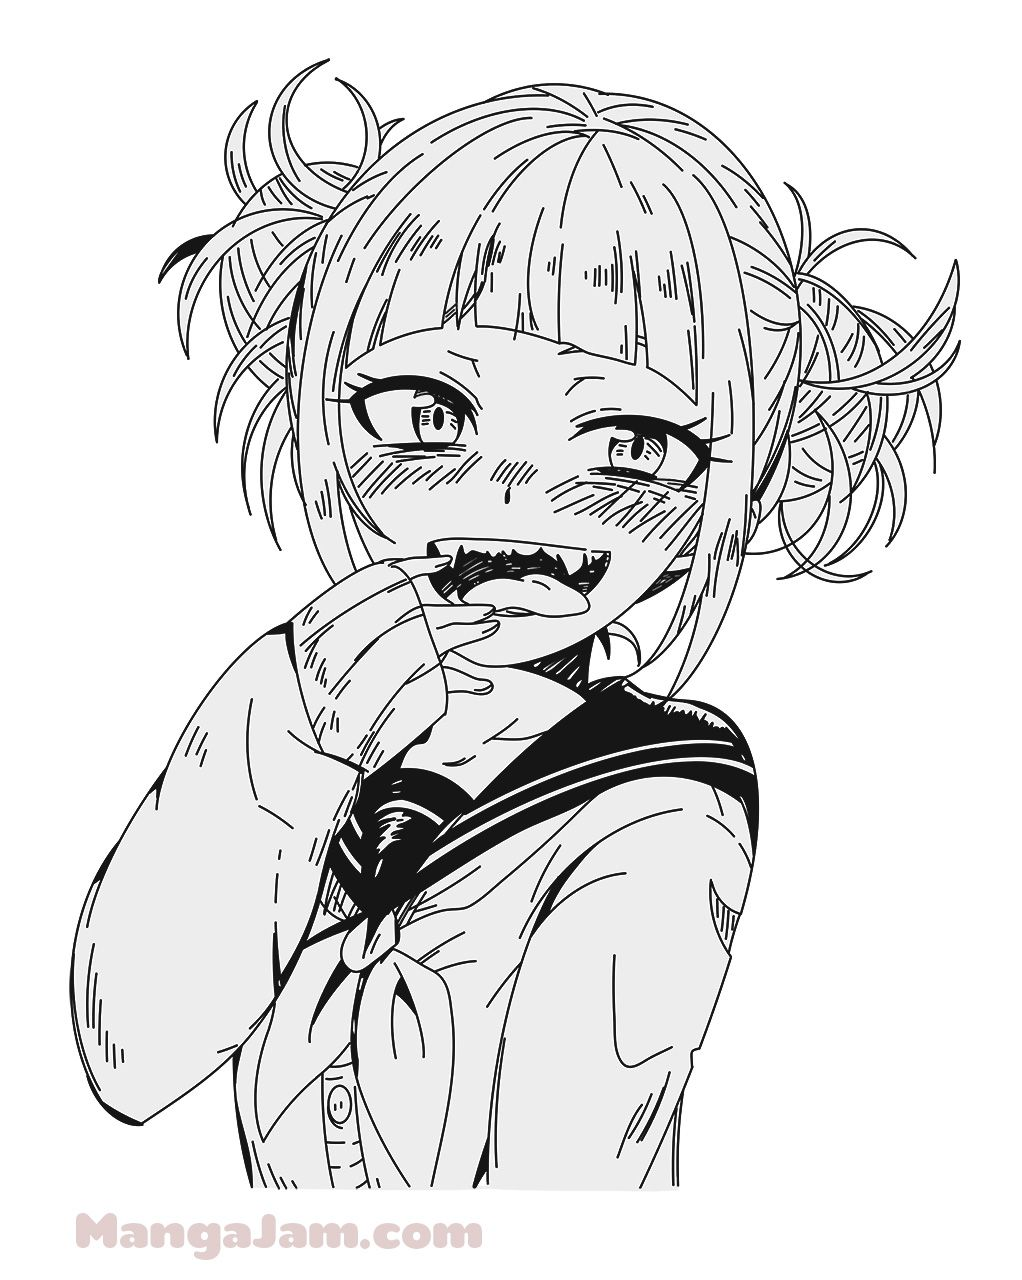 How To Draw Himiko Toga From My Hero Academia Mangajam Com In 2020 Anime Character Drawing Yandere Anime Anime Sketch